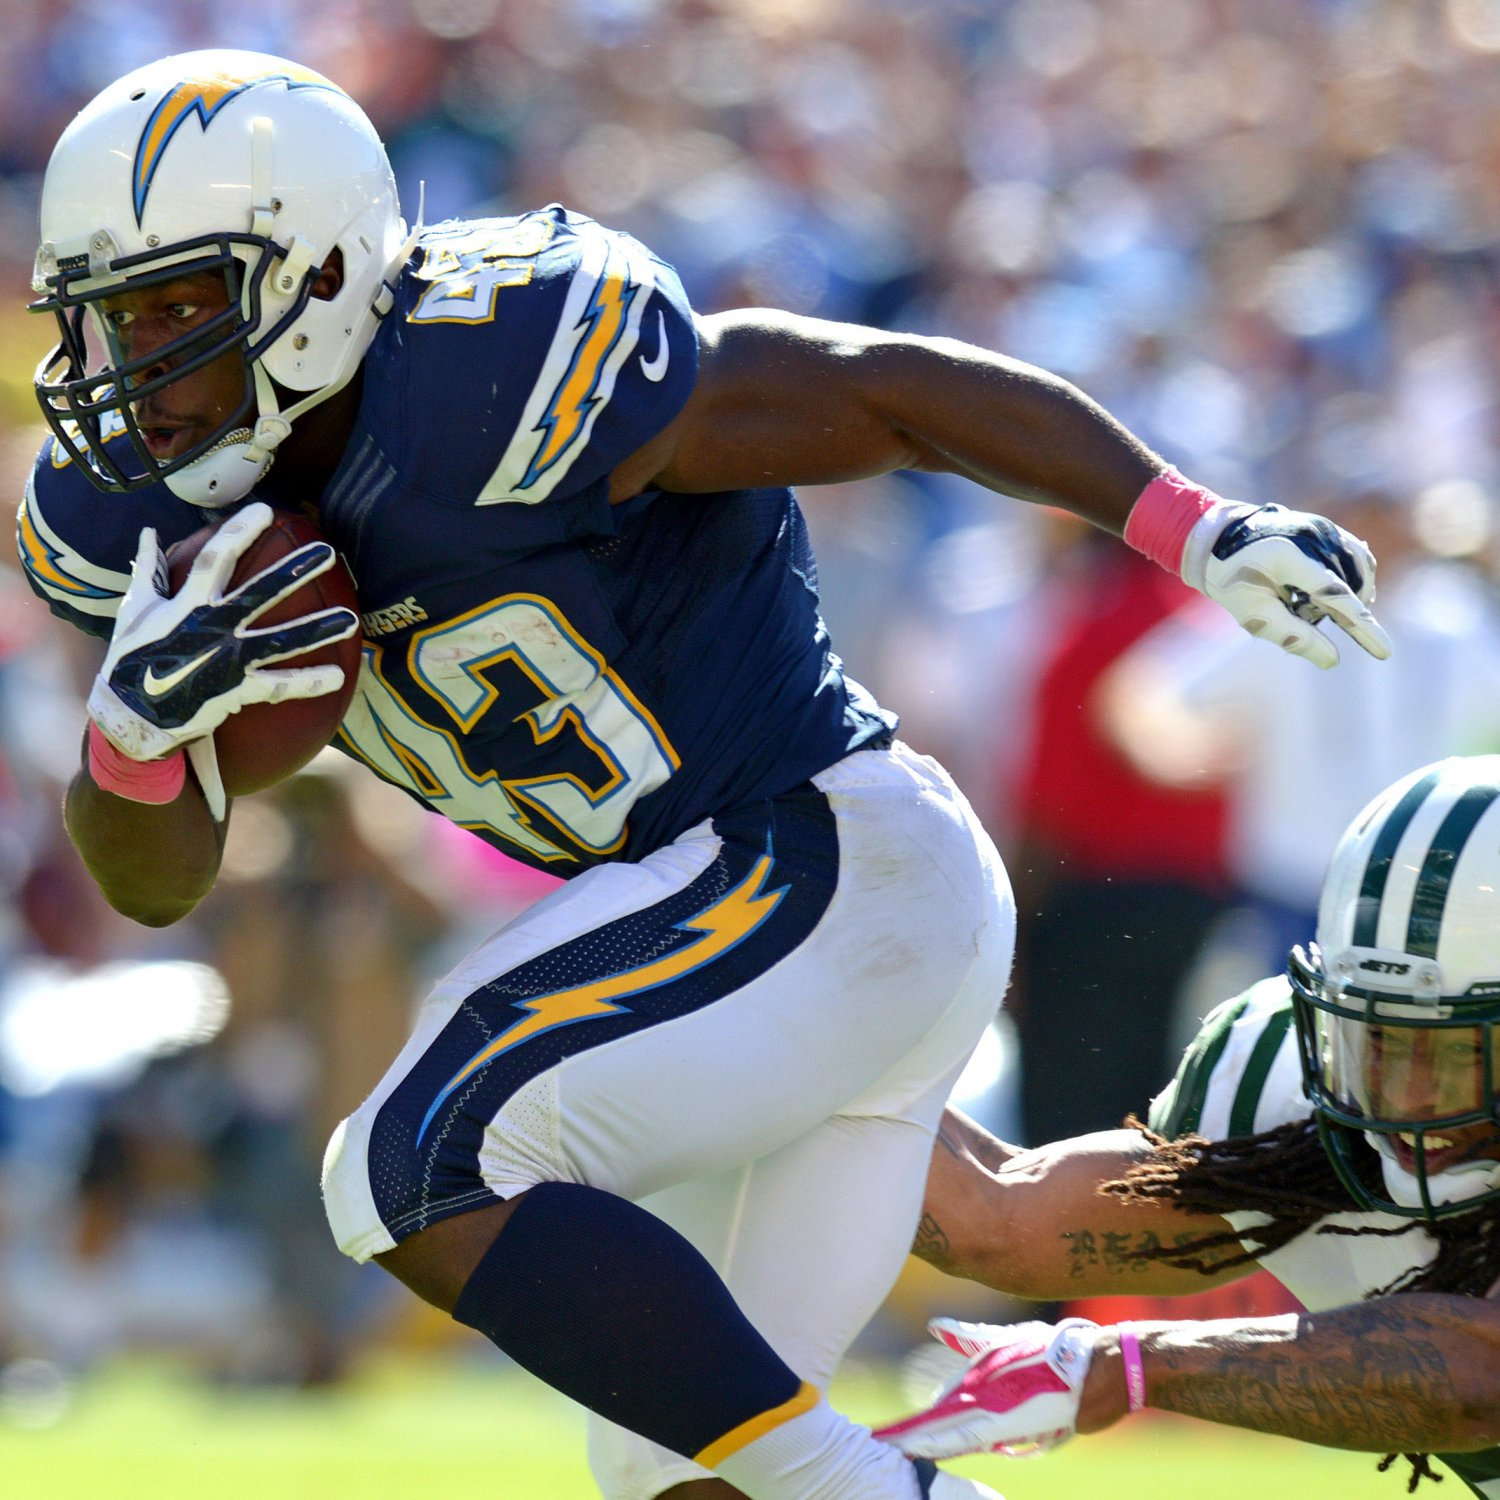 San Diego Chargers Fantasy: The Latest San Diego Chargers News